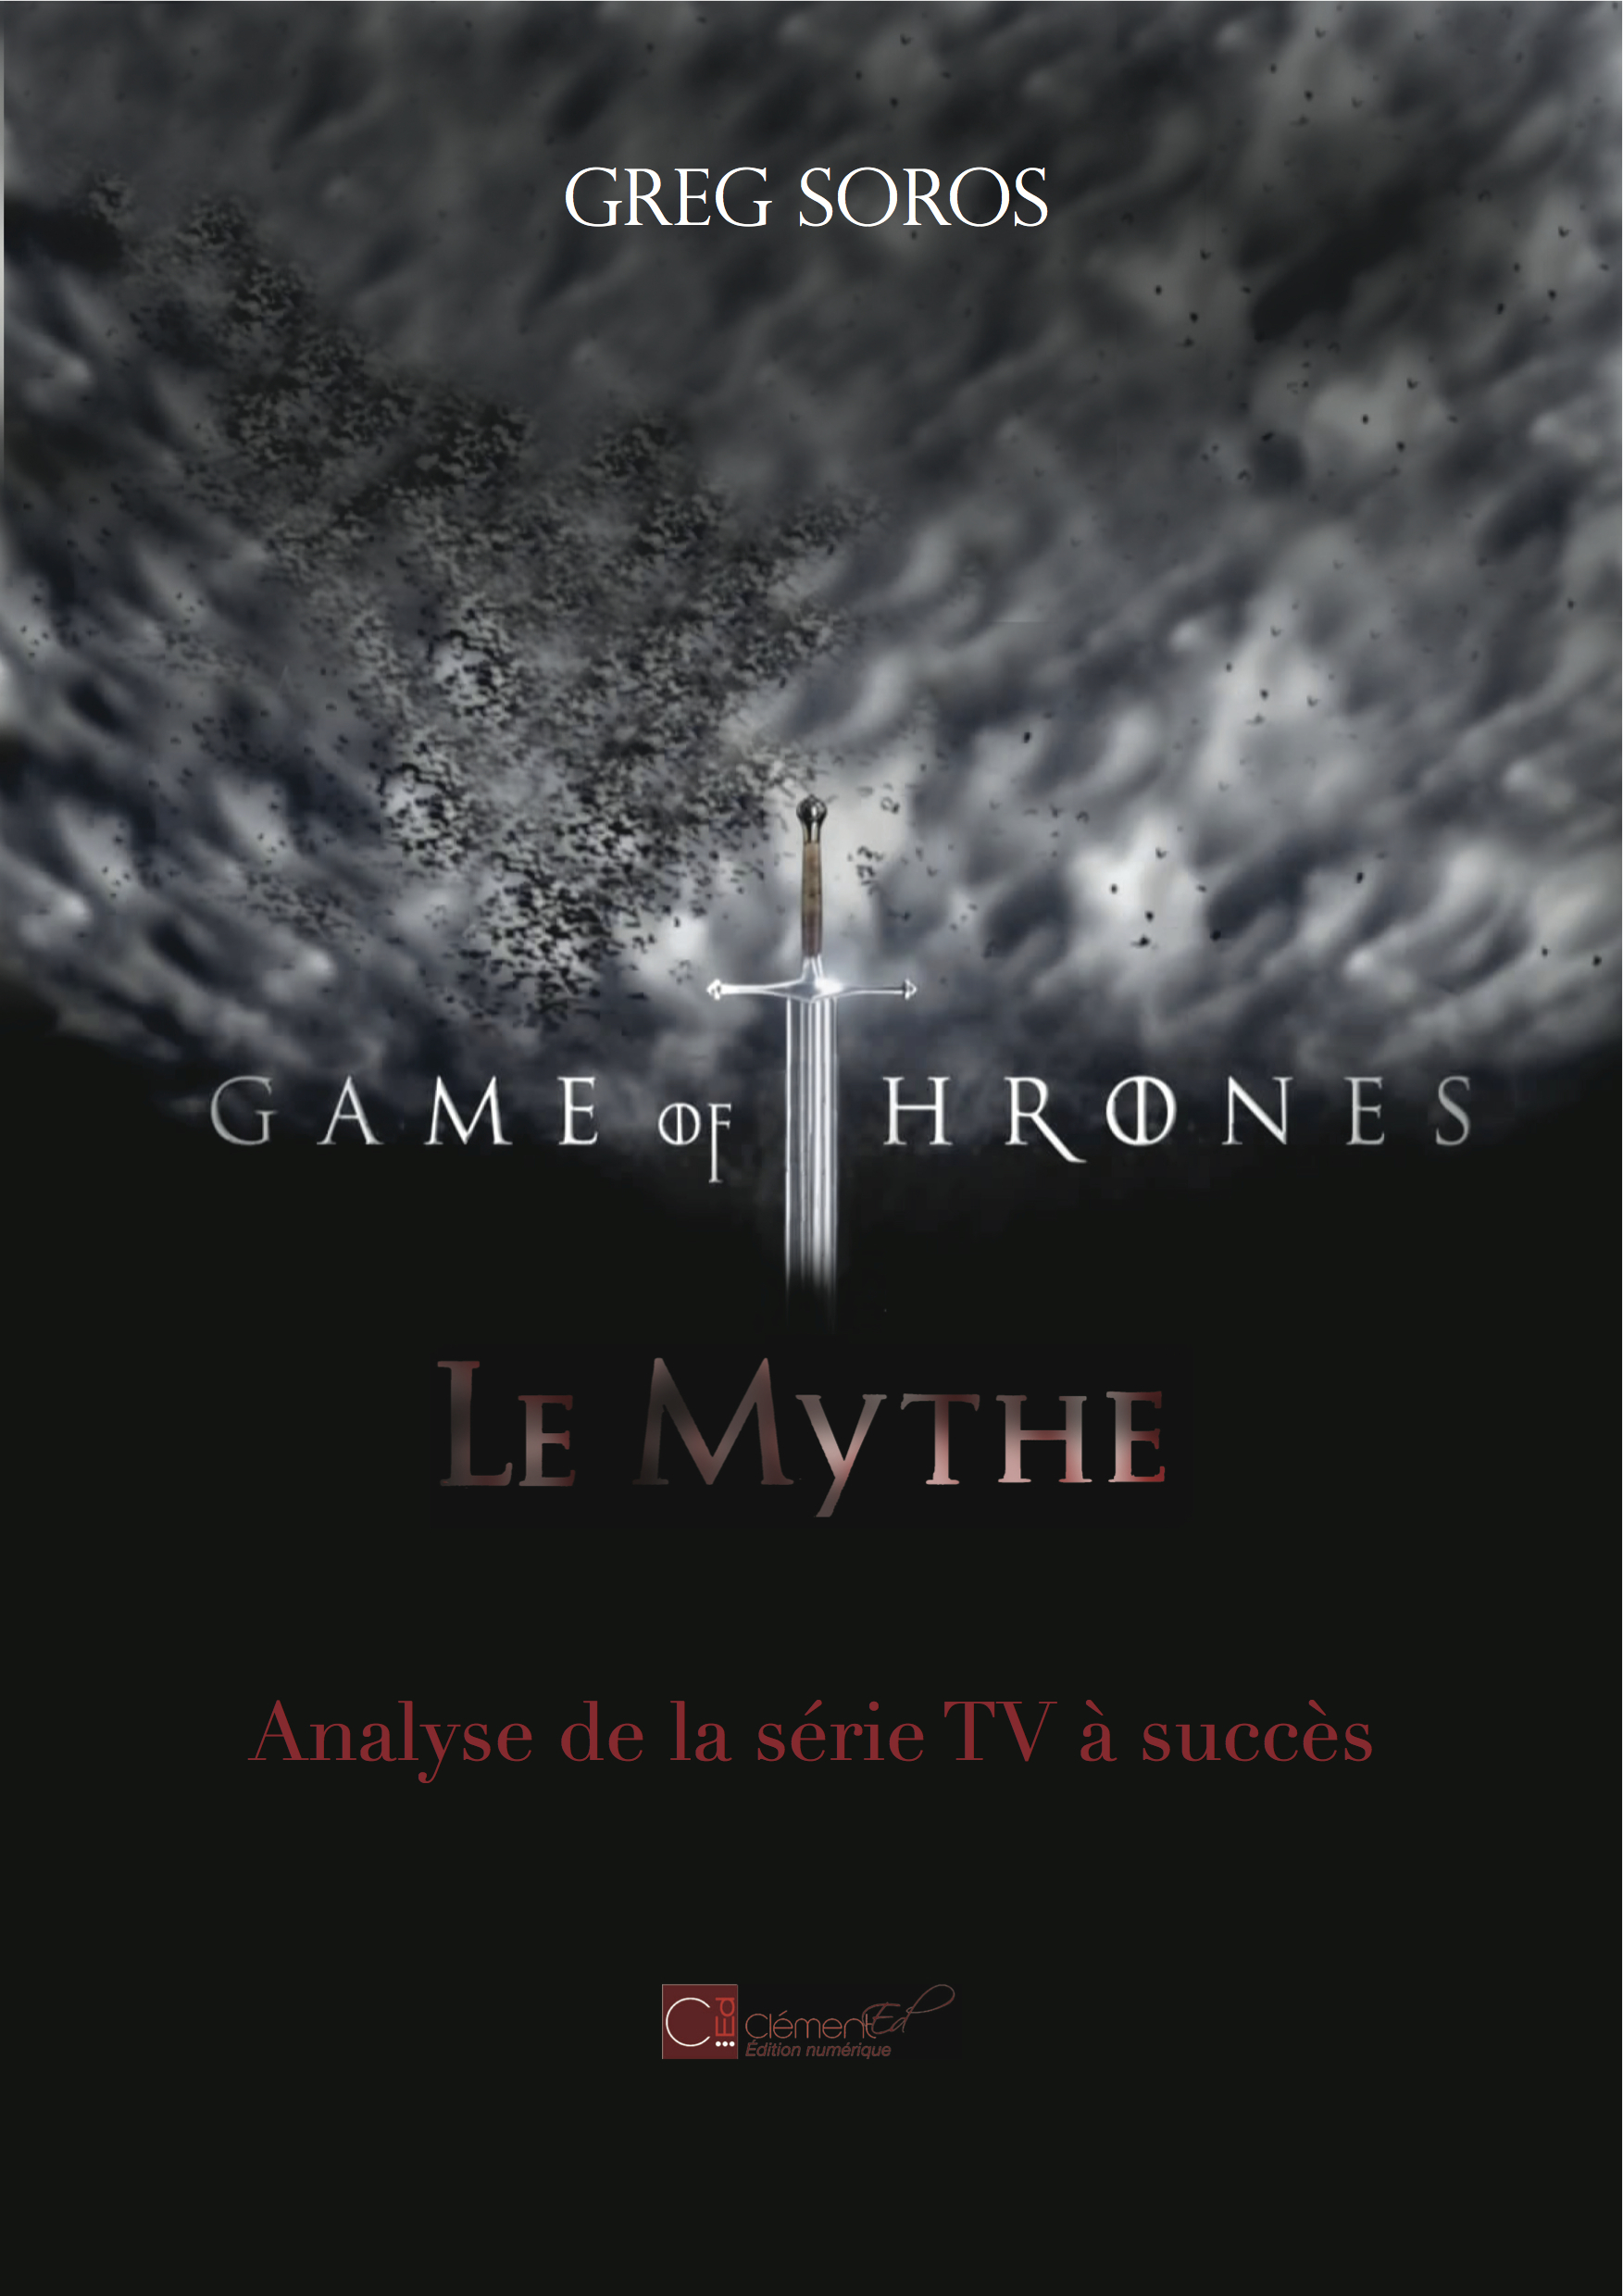 """GAME OF THRONES"" : LE MYTHE. ANALYSE D'UNE SERIE TV A SUCCES"